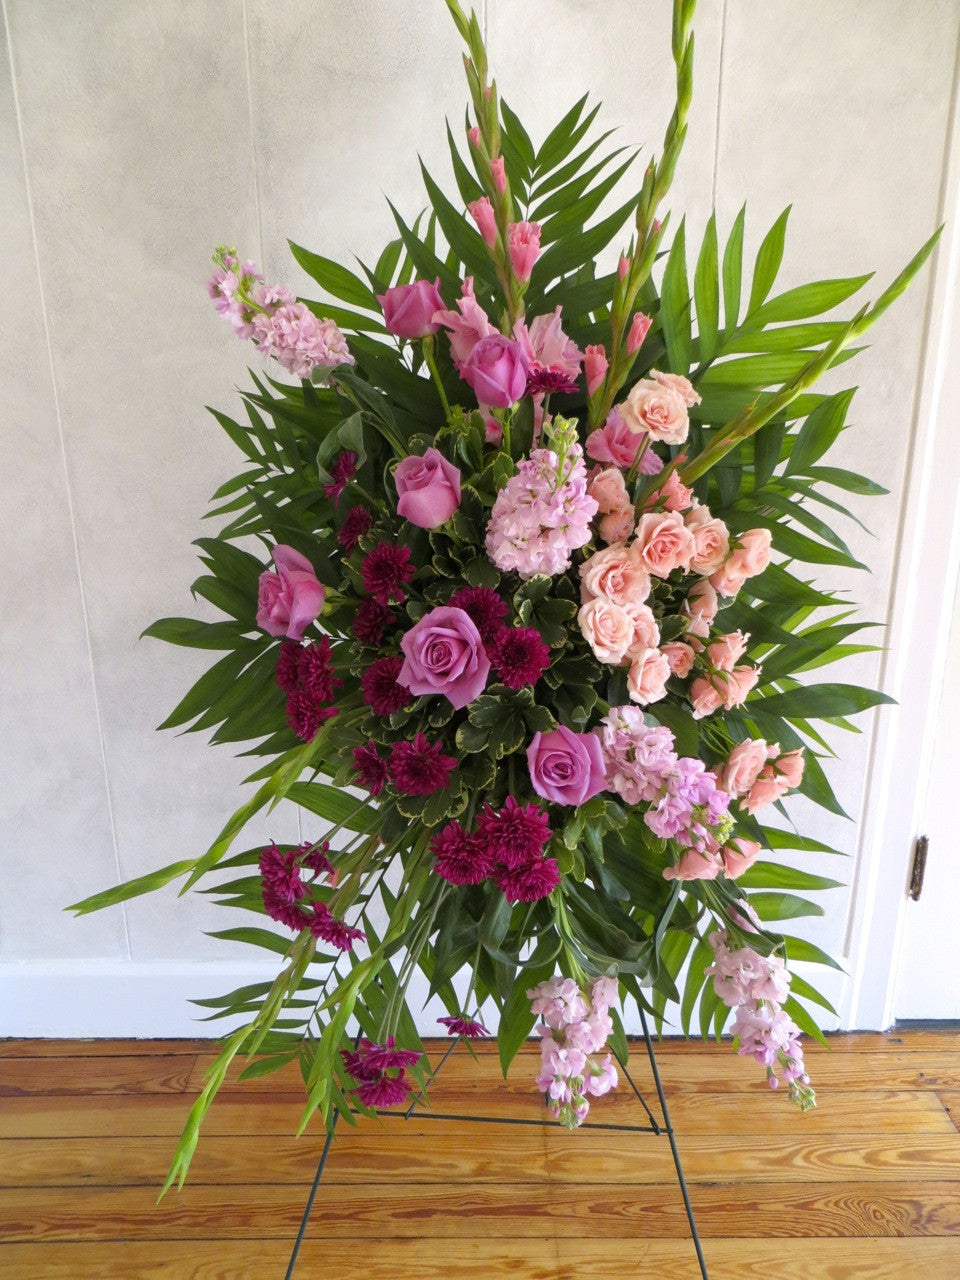 Versailles spray funeral flowers in lexington ky michlers florist easel spray with a gradient from pink flowers to purple designed by michlers florist in izmirmasajfo